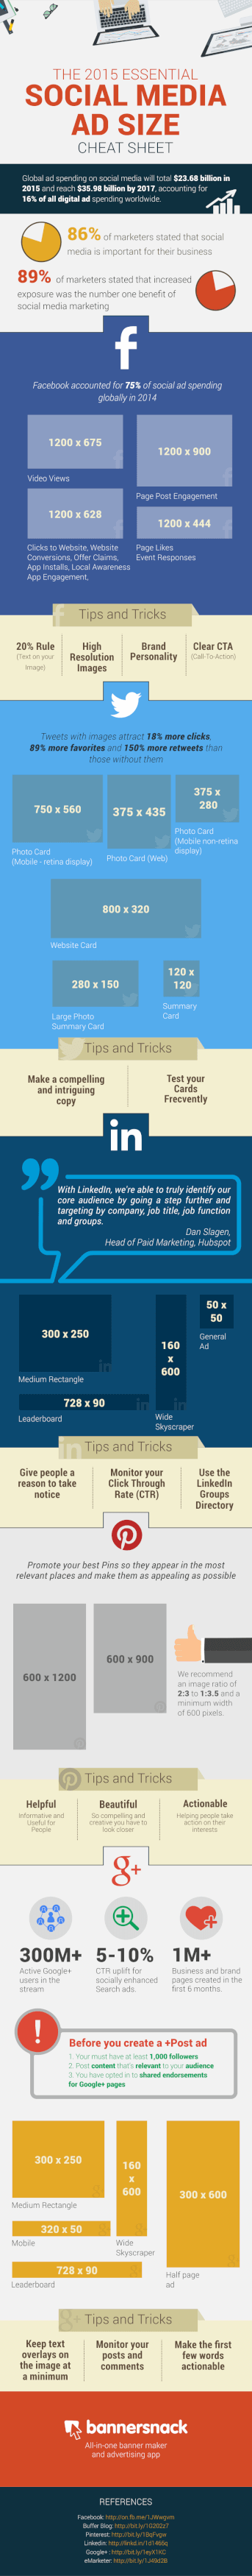 Social Media Ad Sizes Infographic 2015